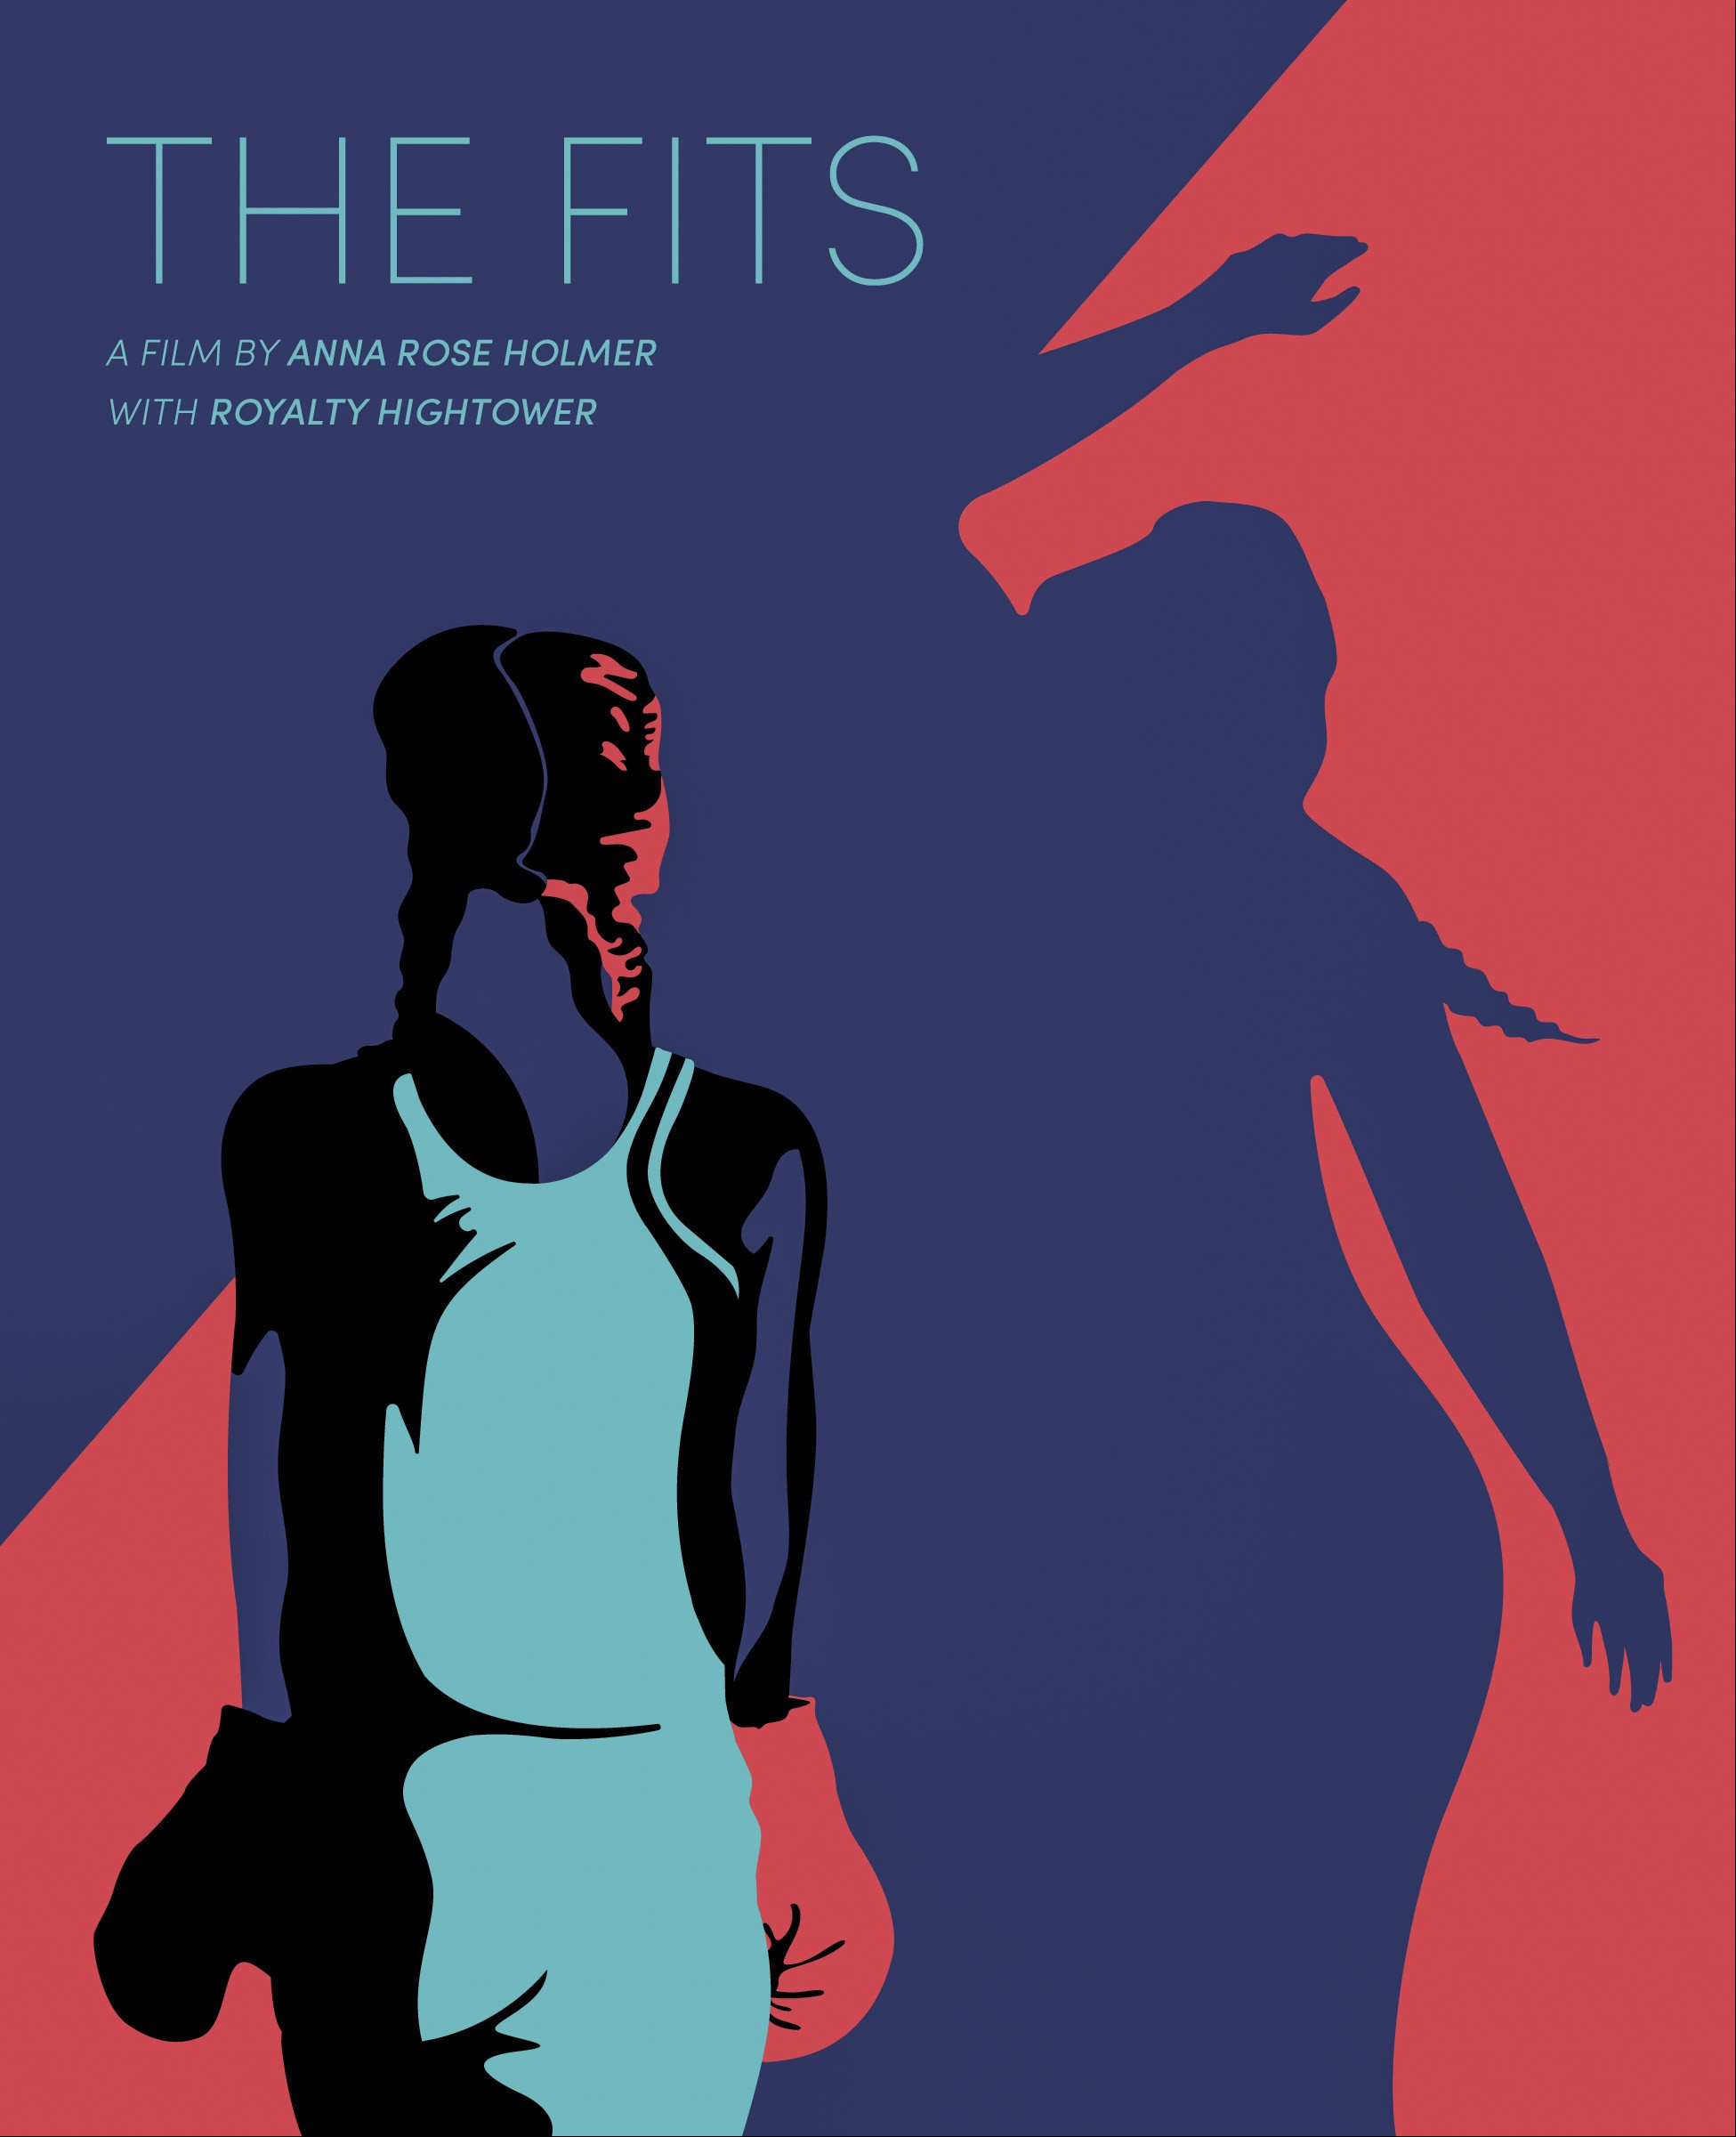 feature_11212016_top10movies_thefits_illustration_by_erika_rossi